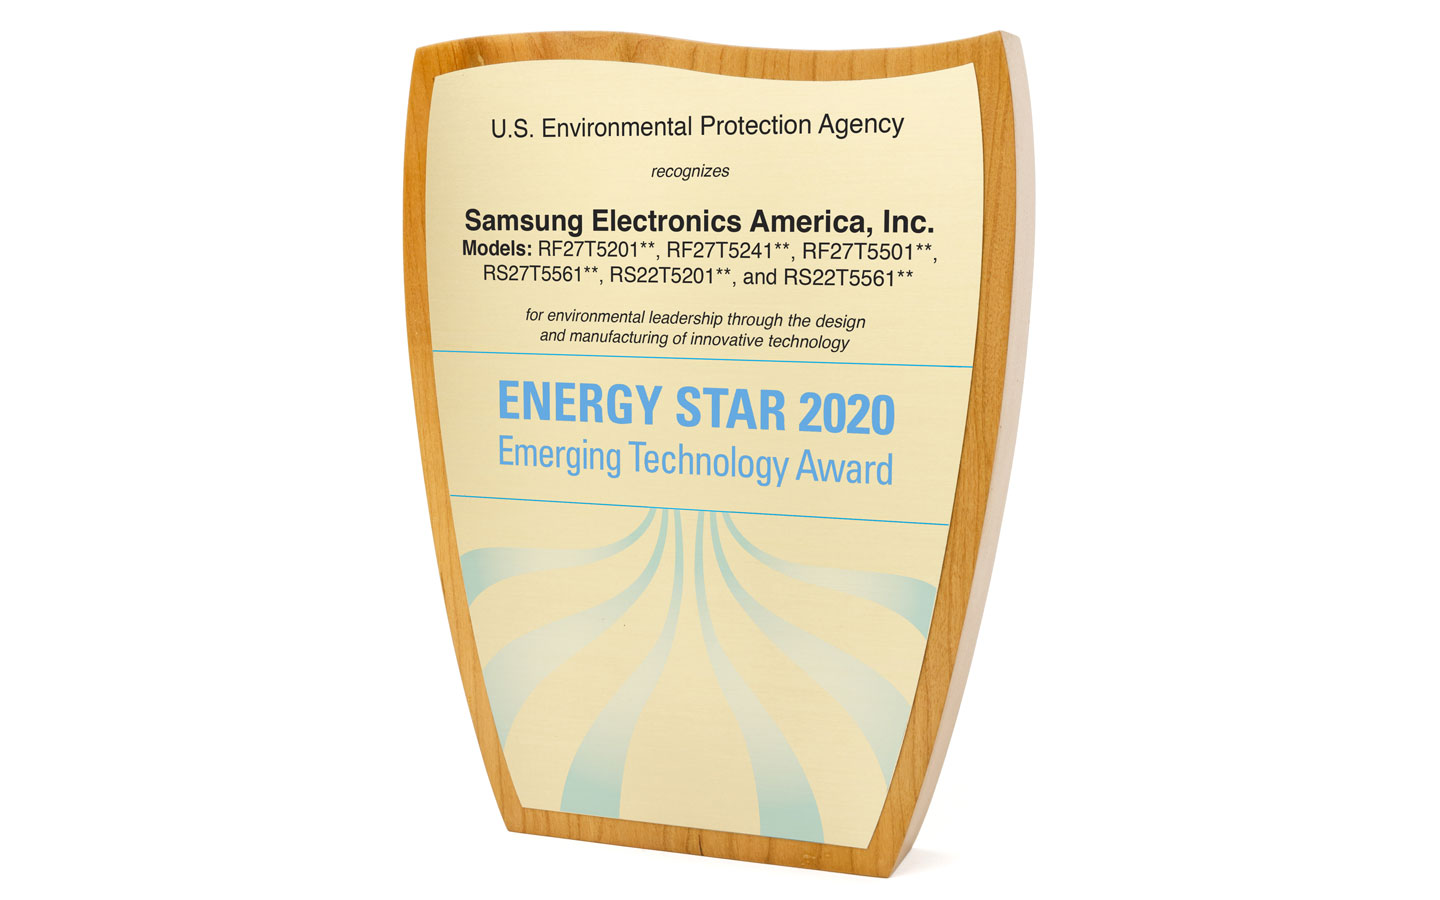 EPA presents the ENERGY STAR Emerging Technology Award for Advanced Adaptive Compressors to Samsung Electronics America, Inc.